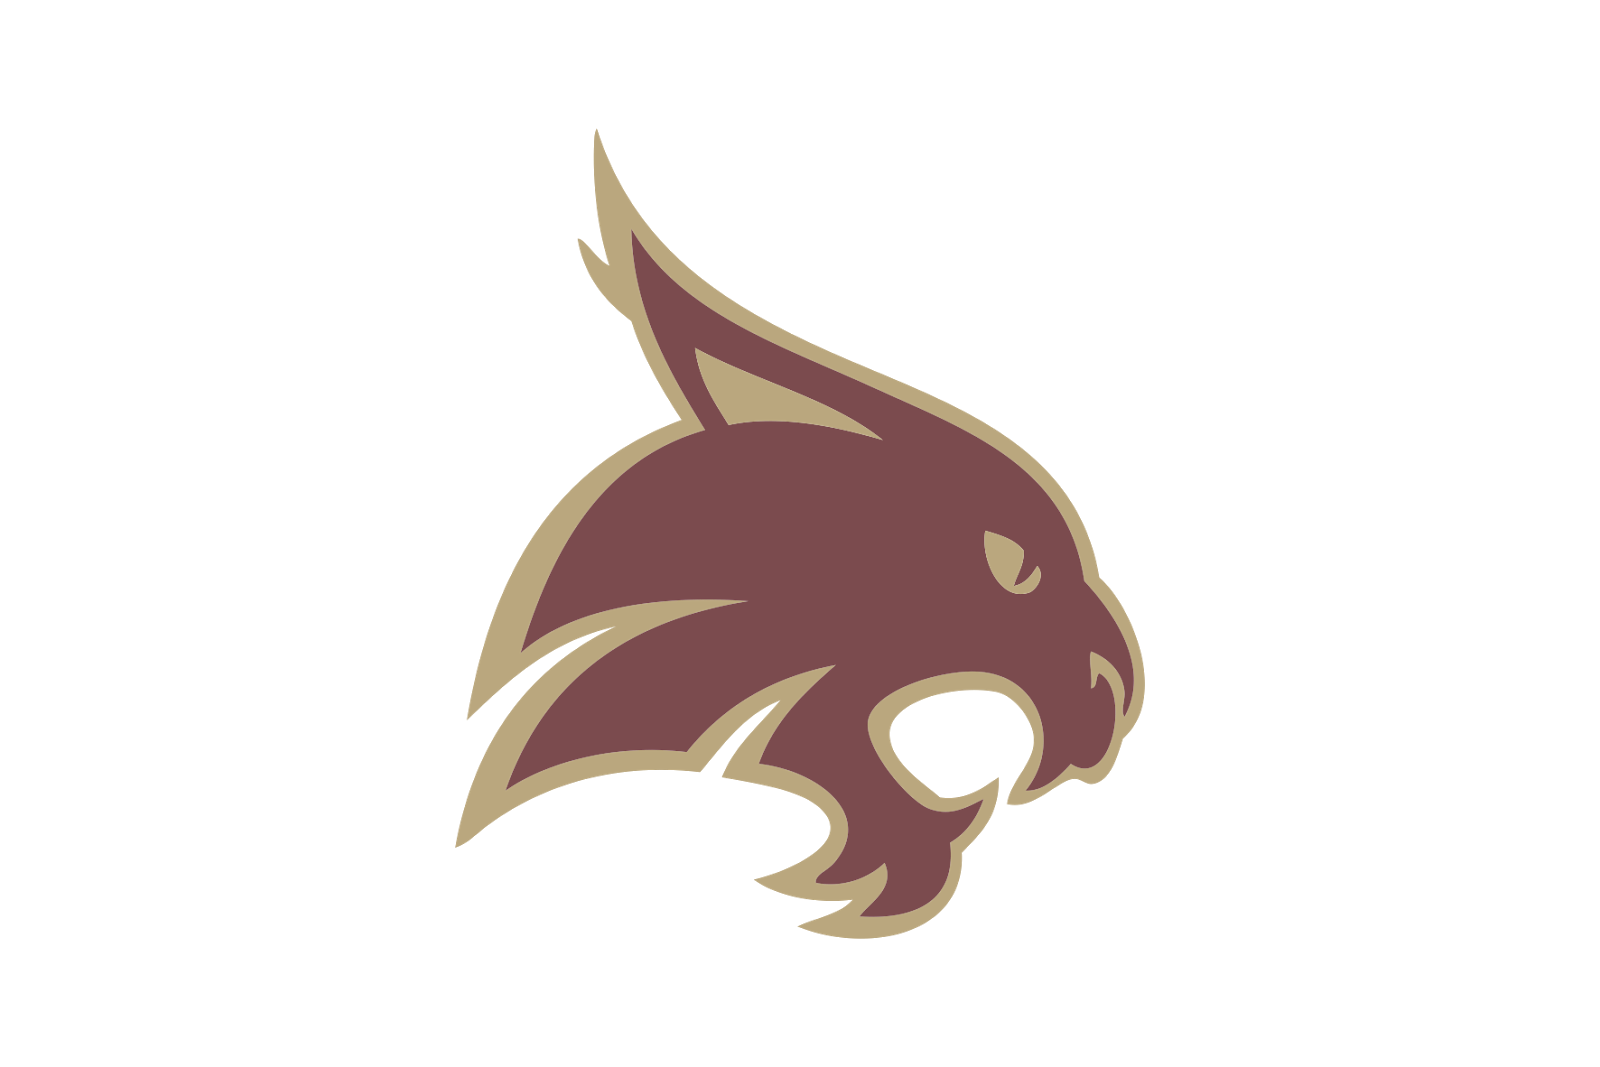 texas state university bobcats logo png #6364